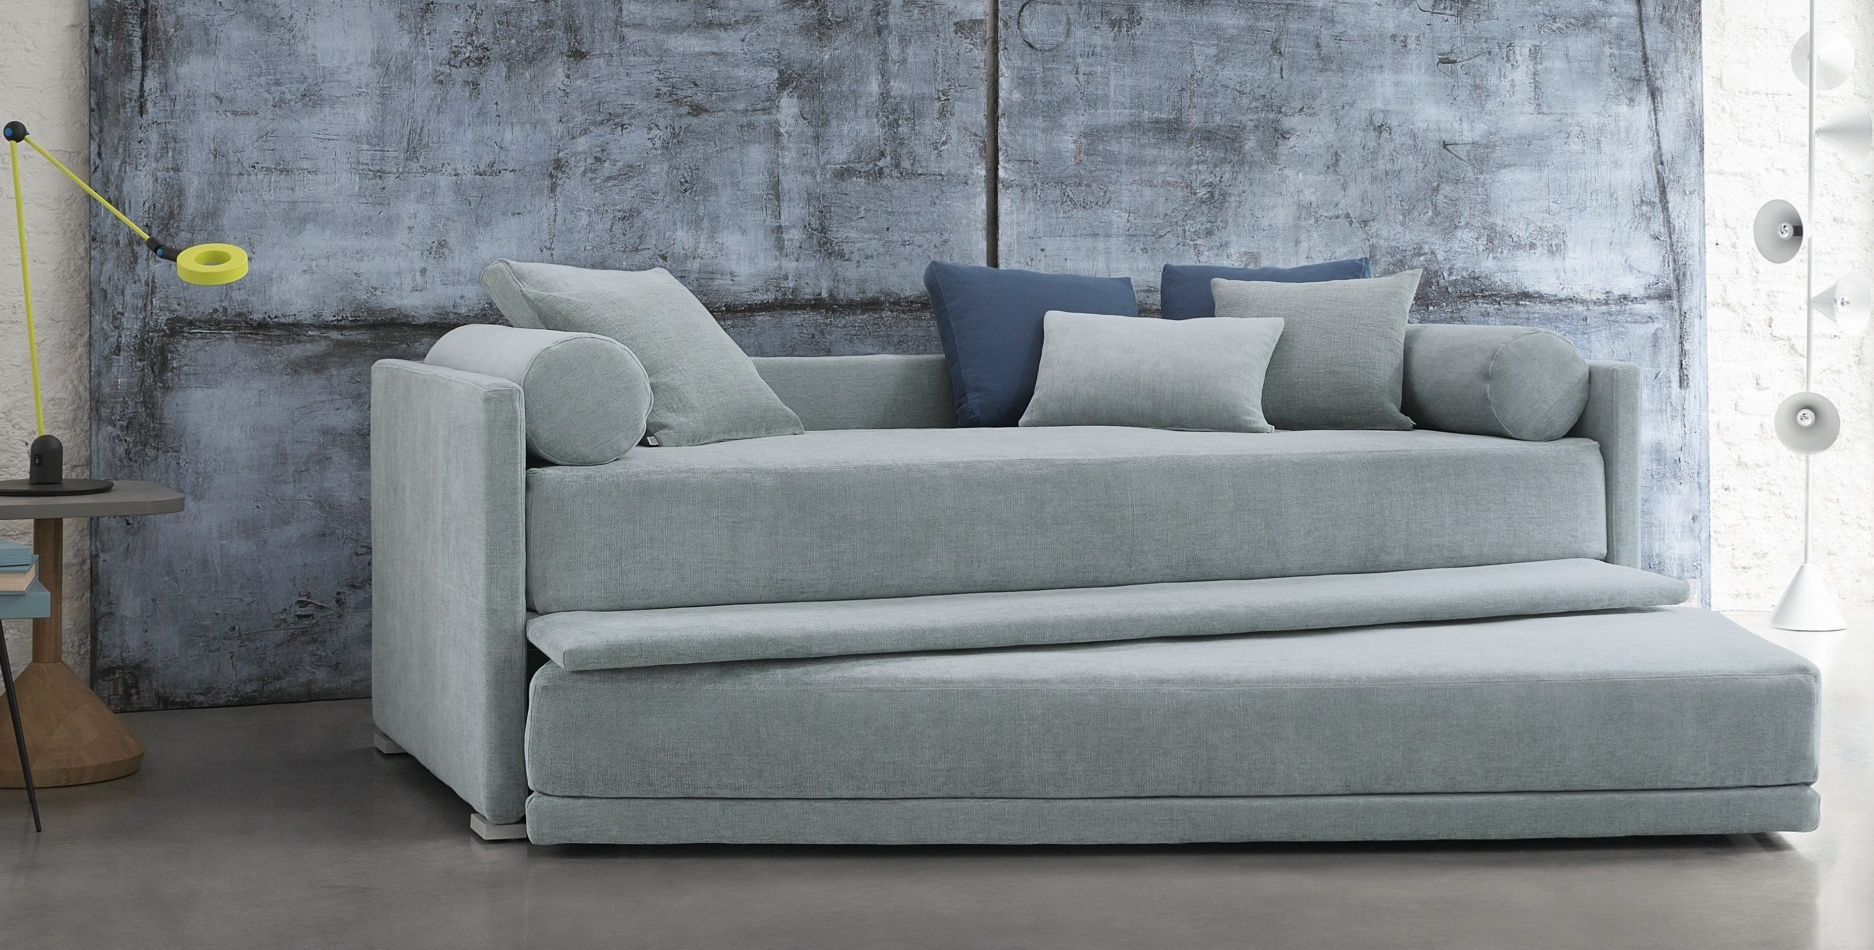 Best Sofa Beds For Everyday Use